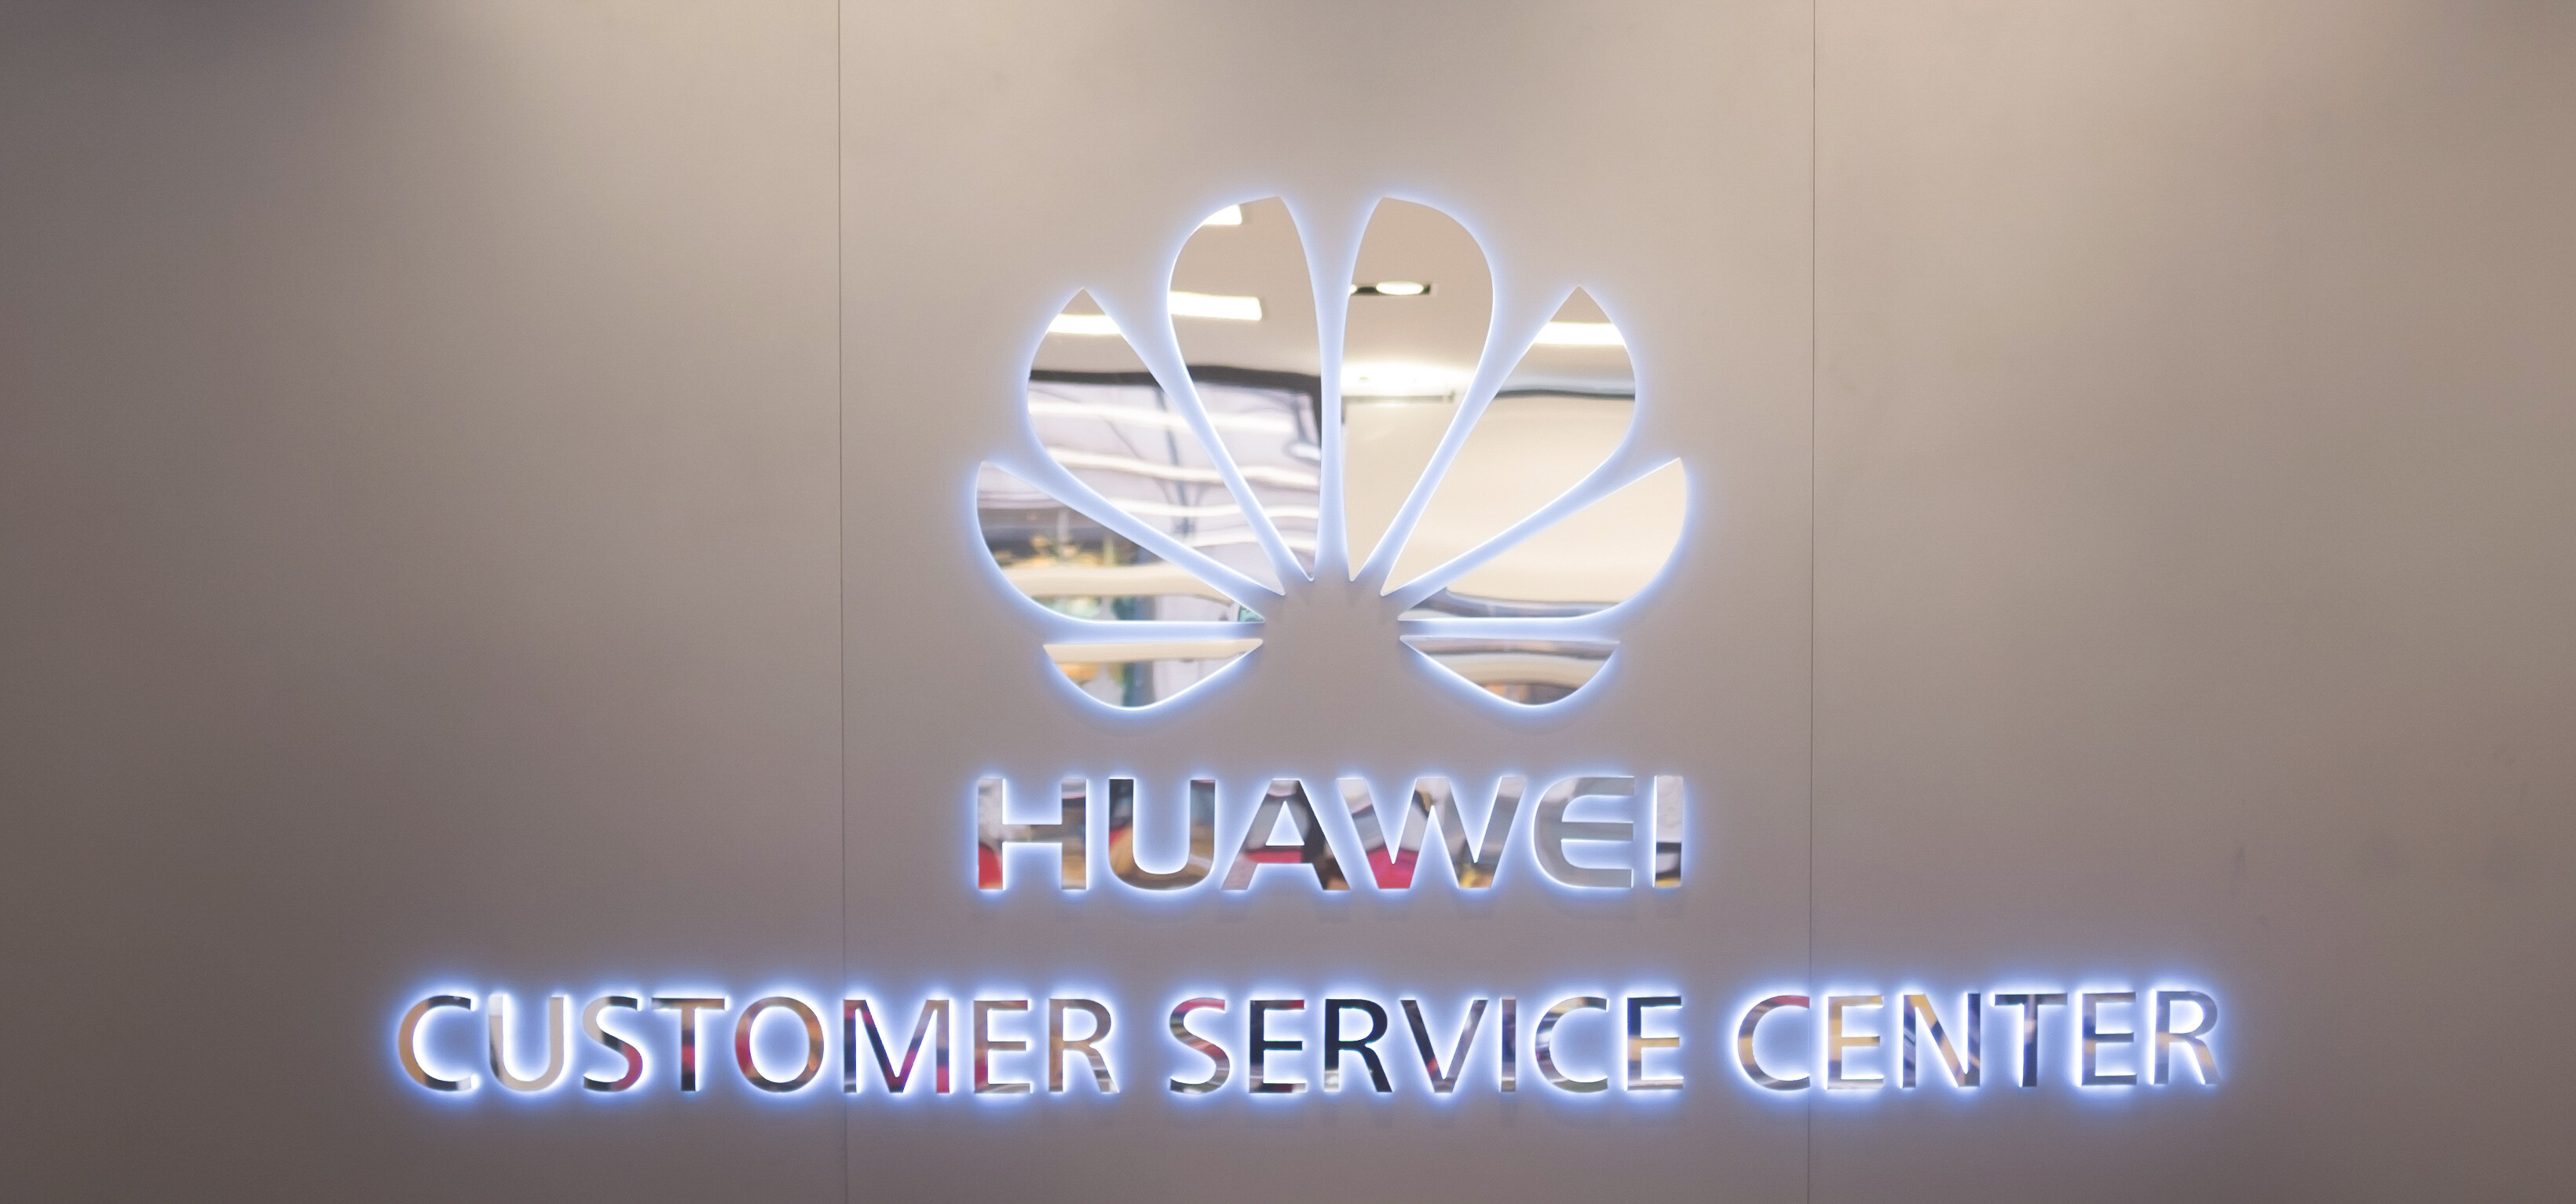 Logo Huawei Customer Service Center